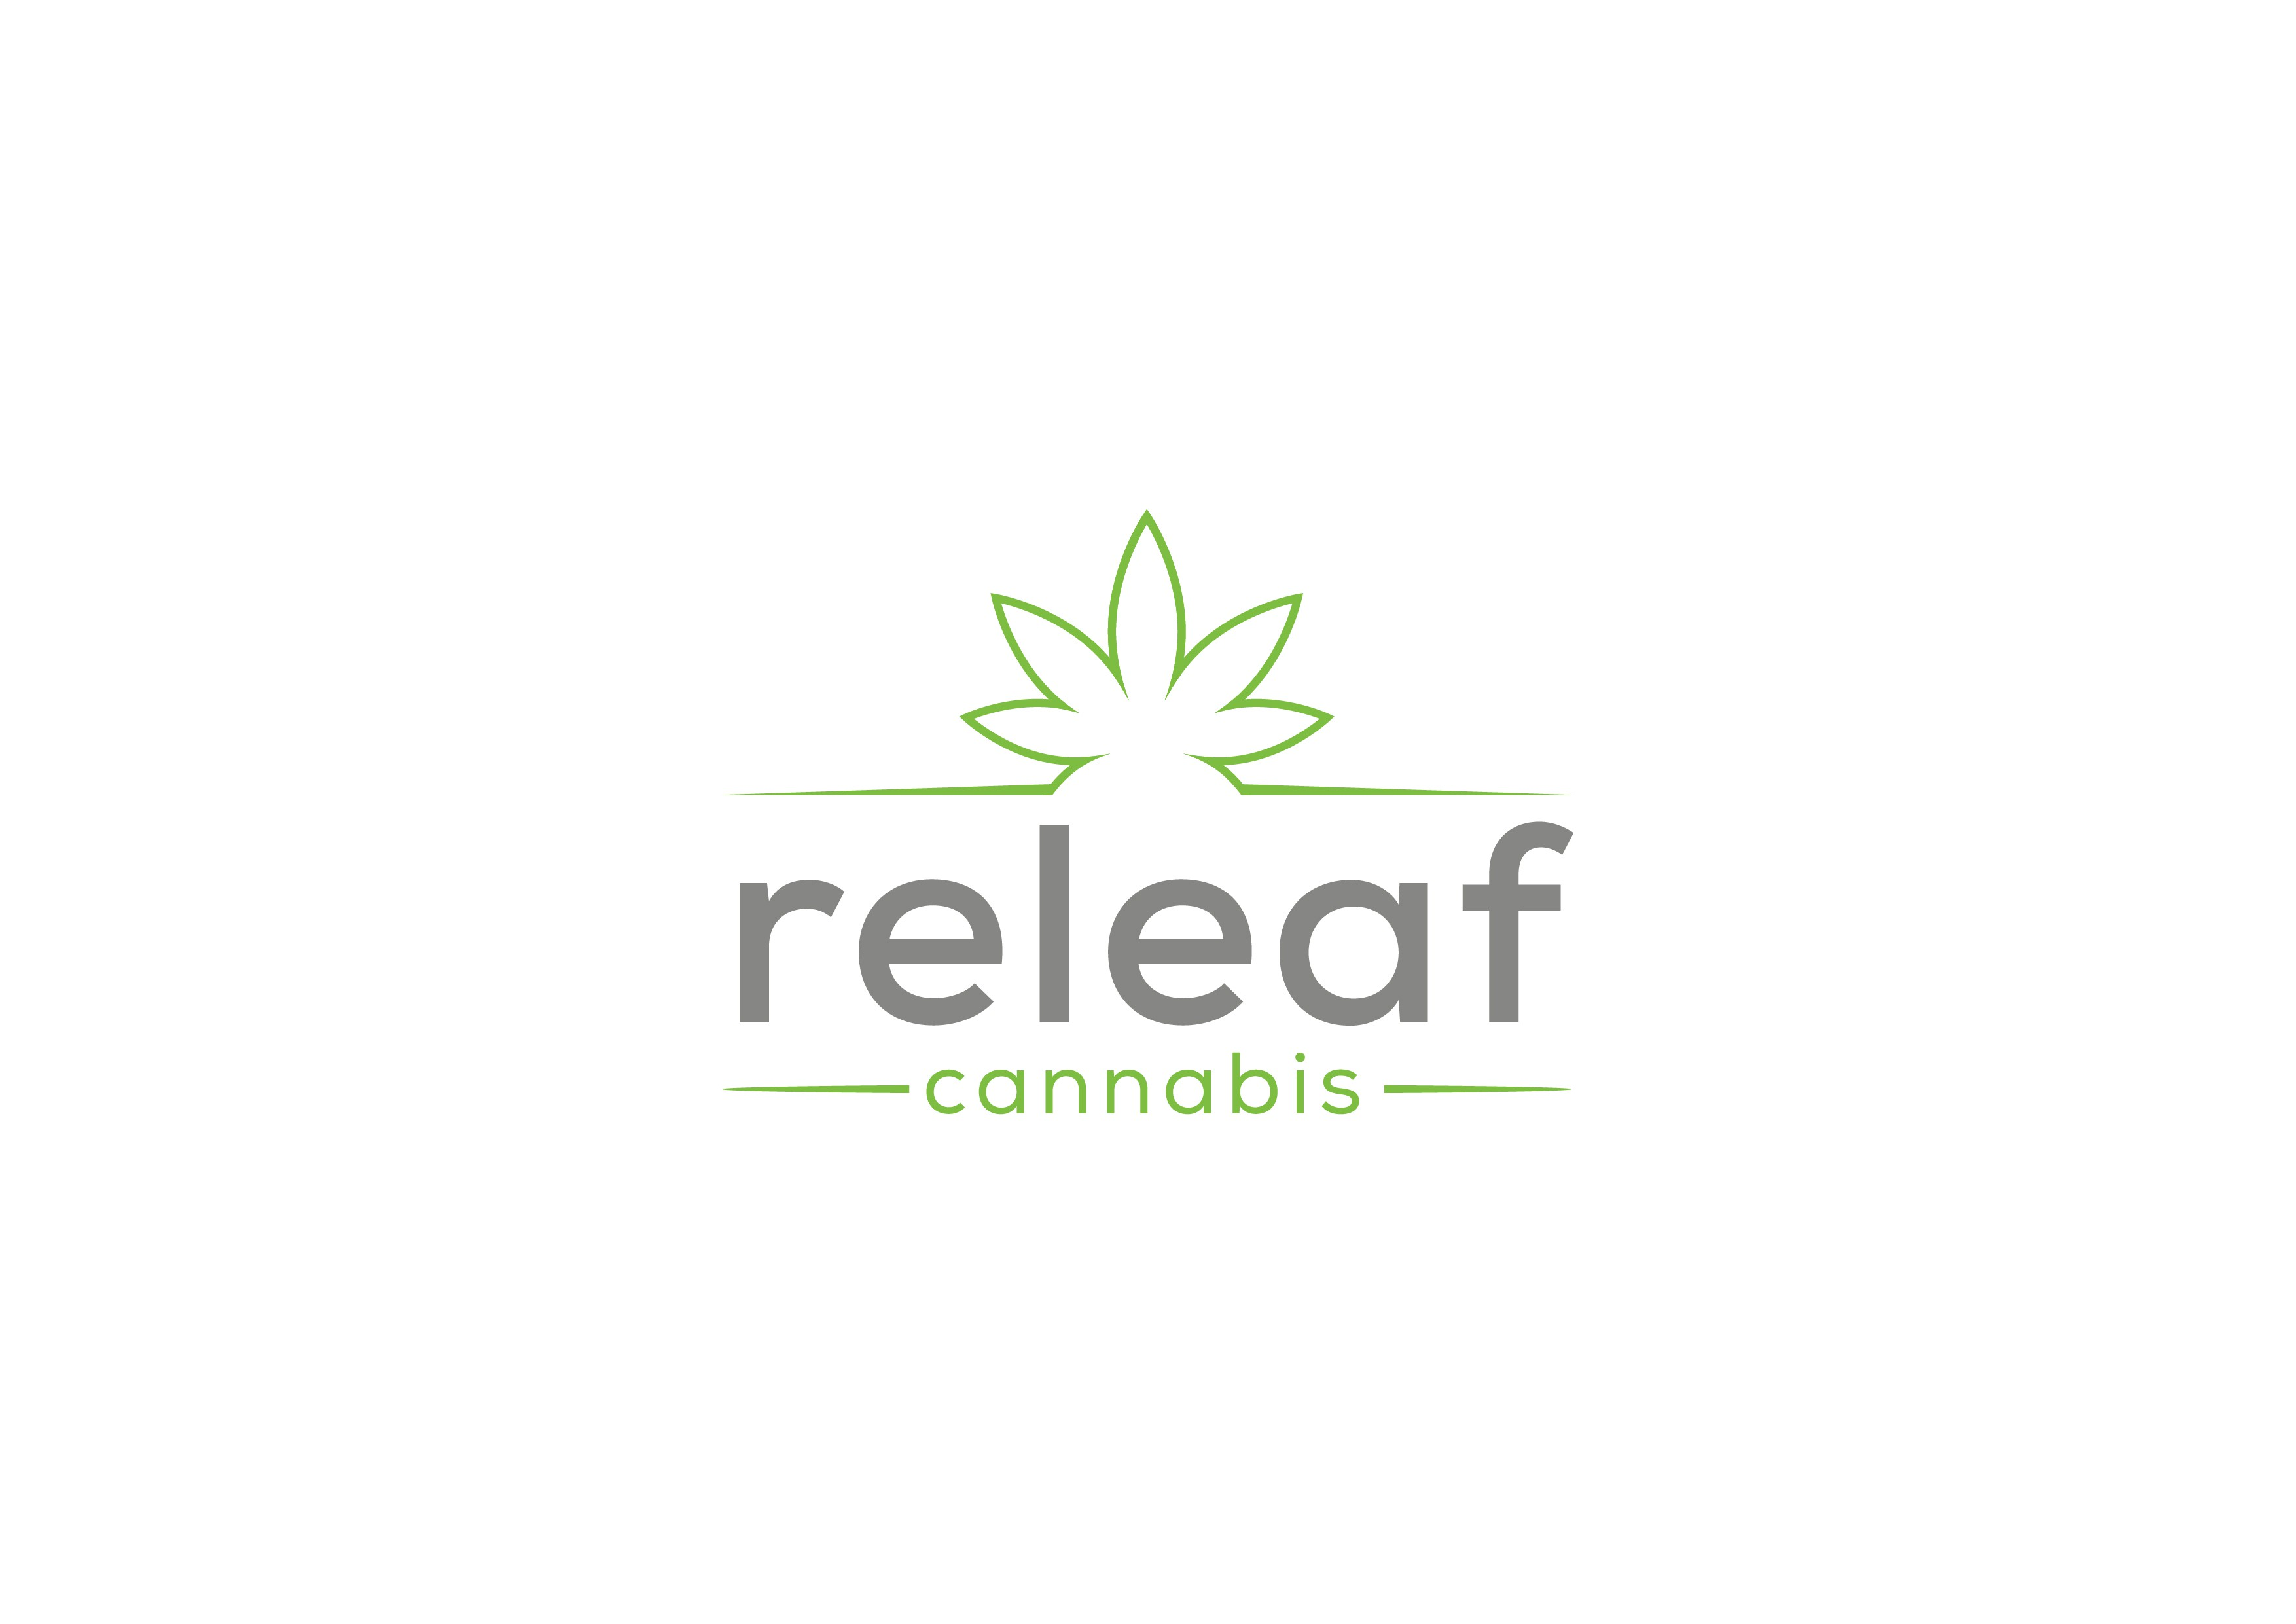 Releaf Cannabis - Need a cool and classy logo. Target group: 18+ with soft, industrial flare